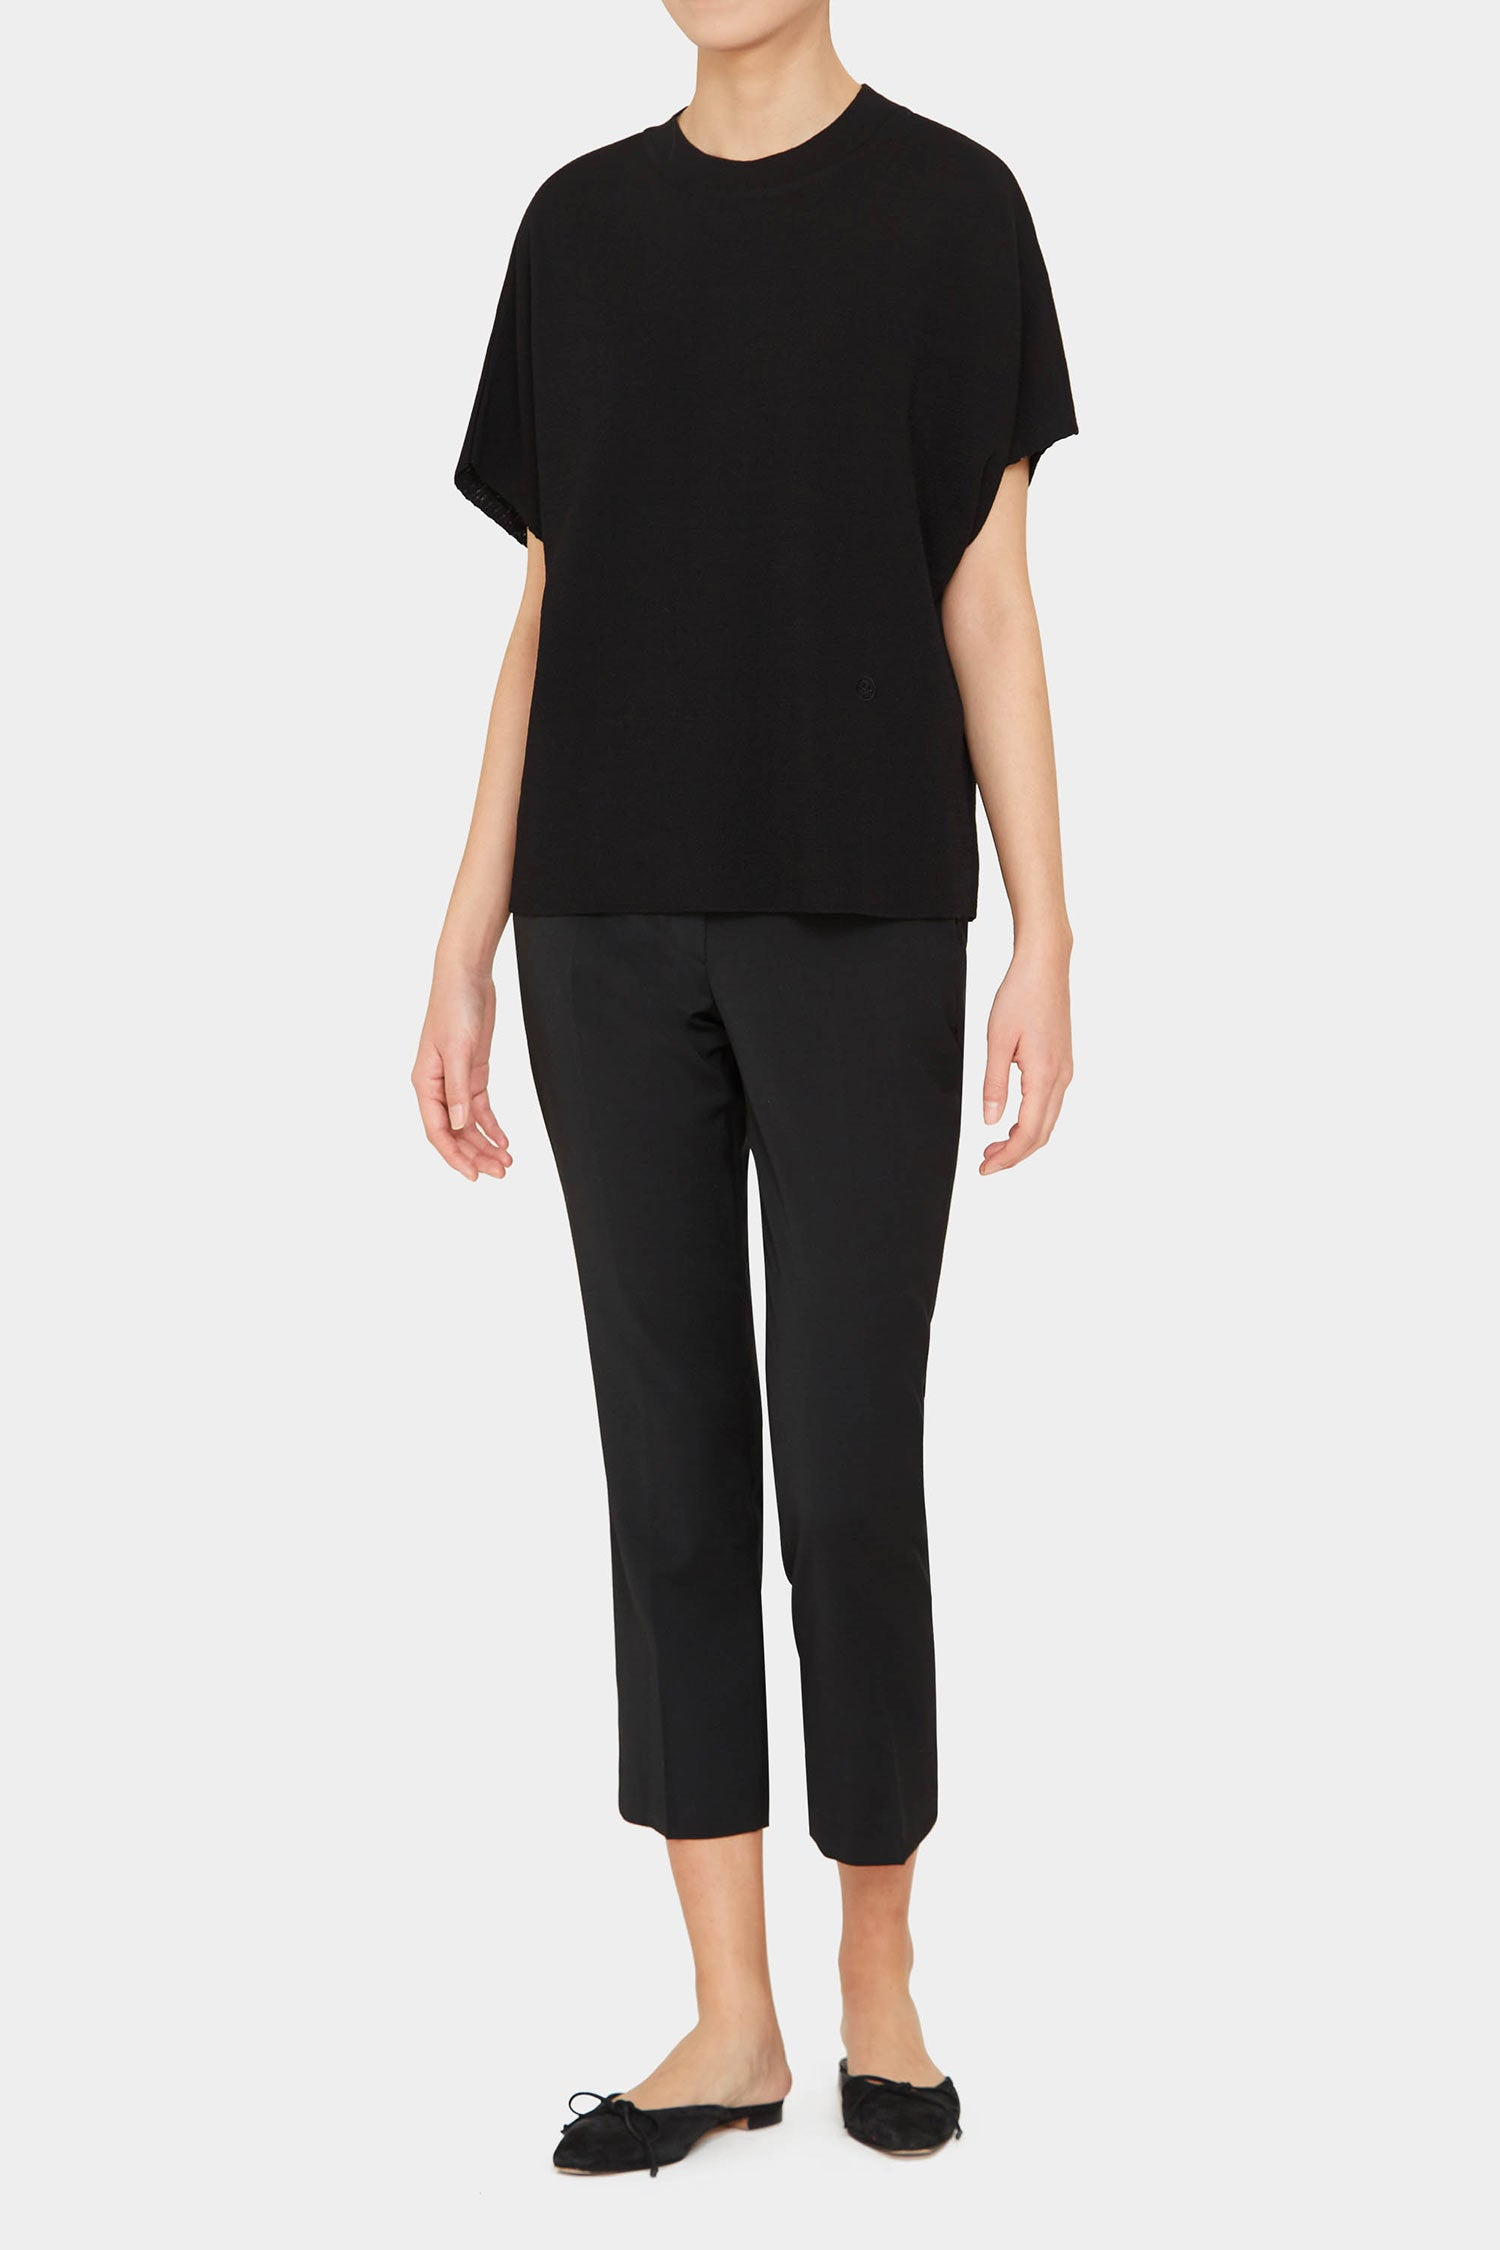 BLACK ANI PERFECT HIGH NECK TOP